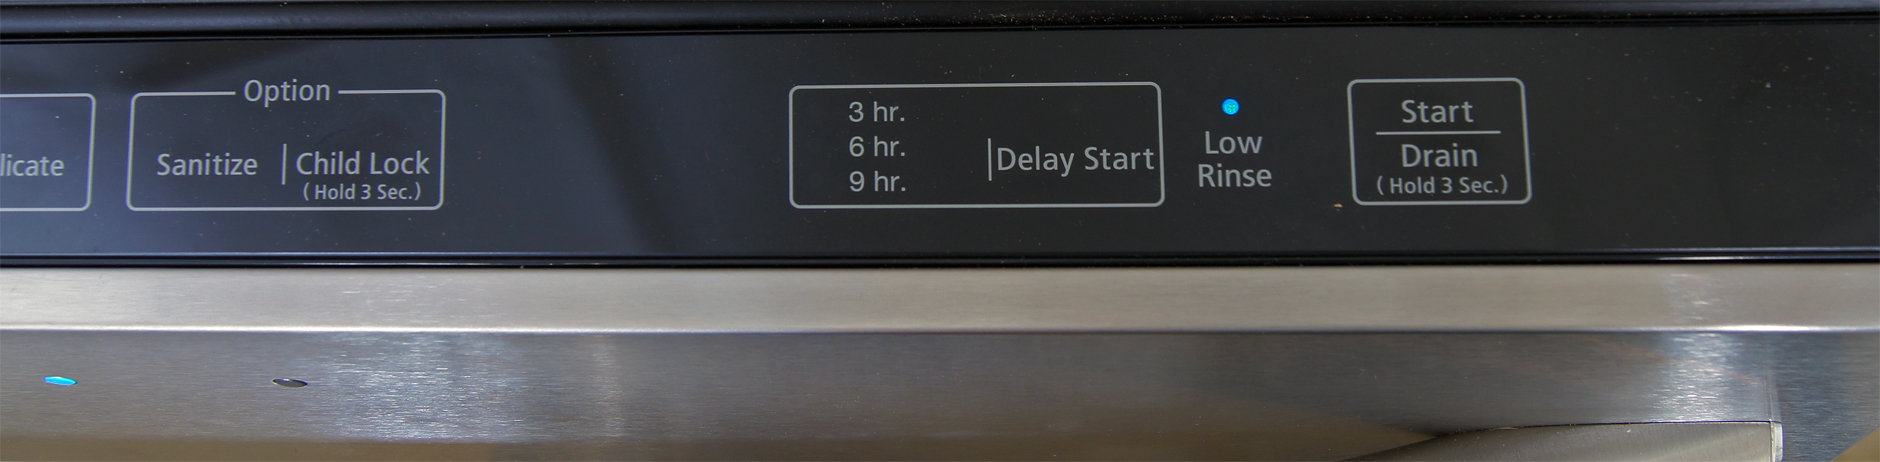 Right side of the Samsung DW80F600UTS's control panel